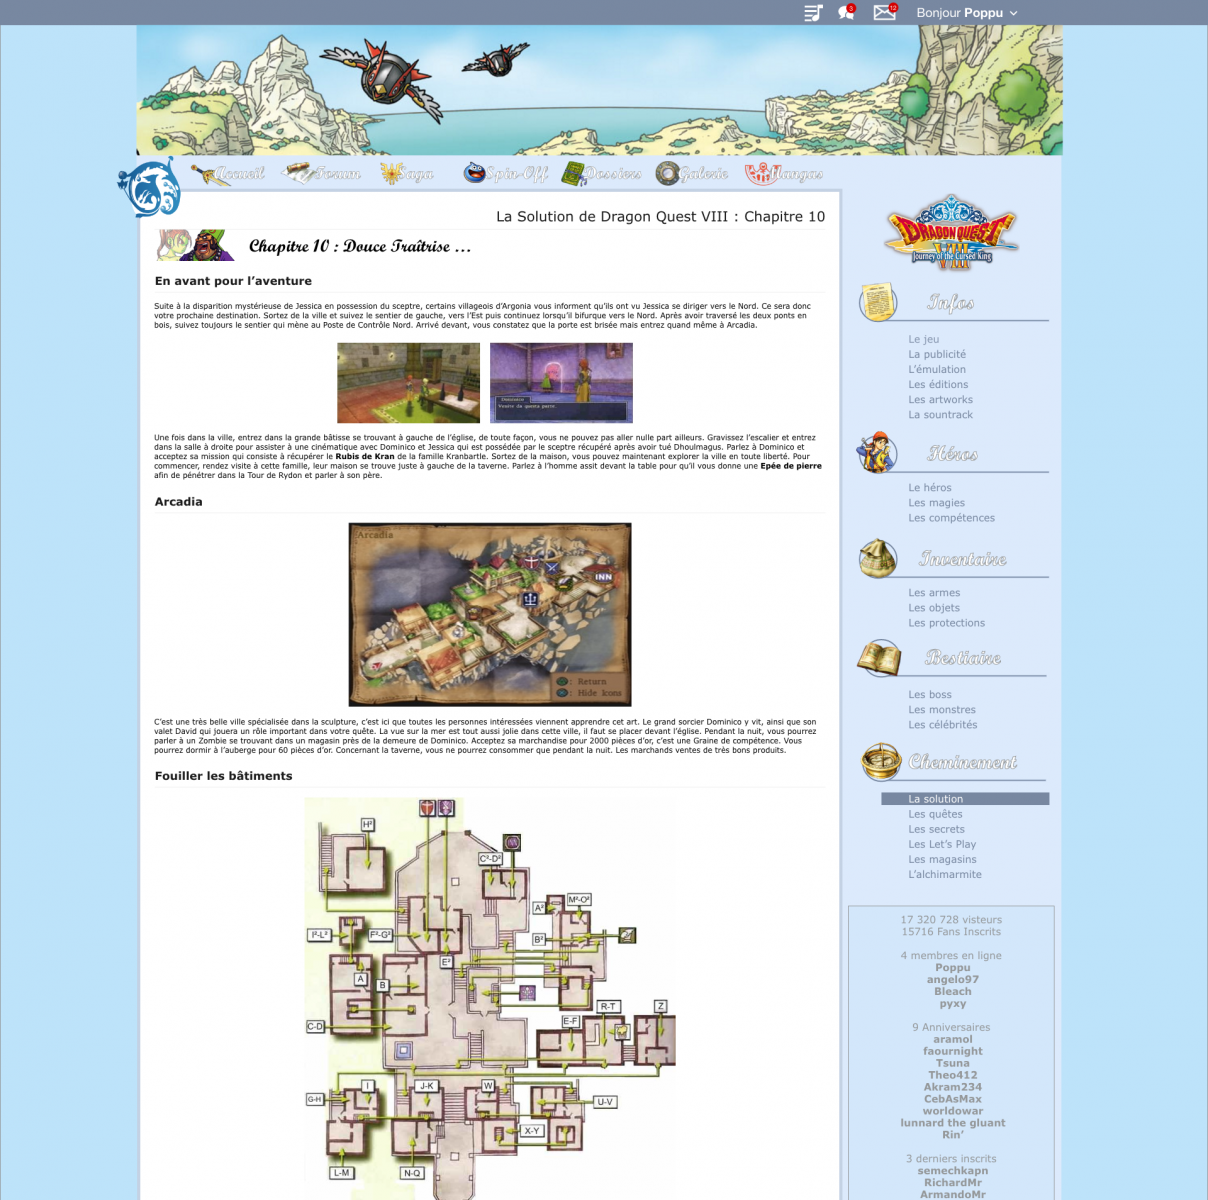 http://www.dragonquest-fan.com/imgs/forum/common/images/FAQ/DQ/1_beta20161204.png